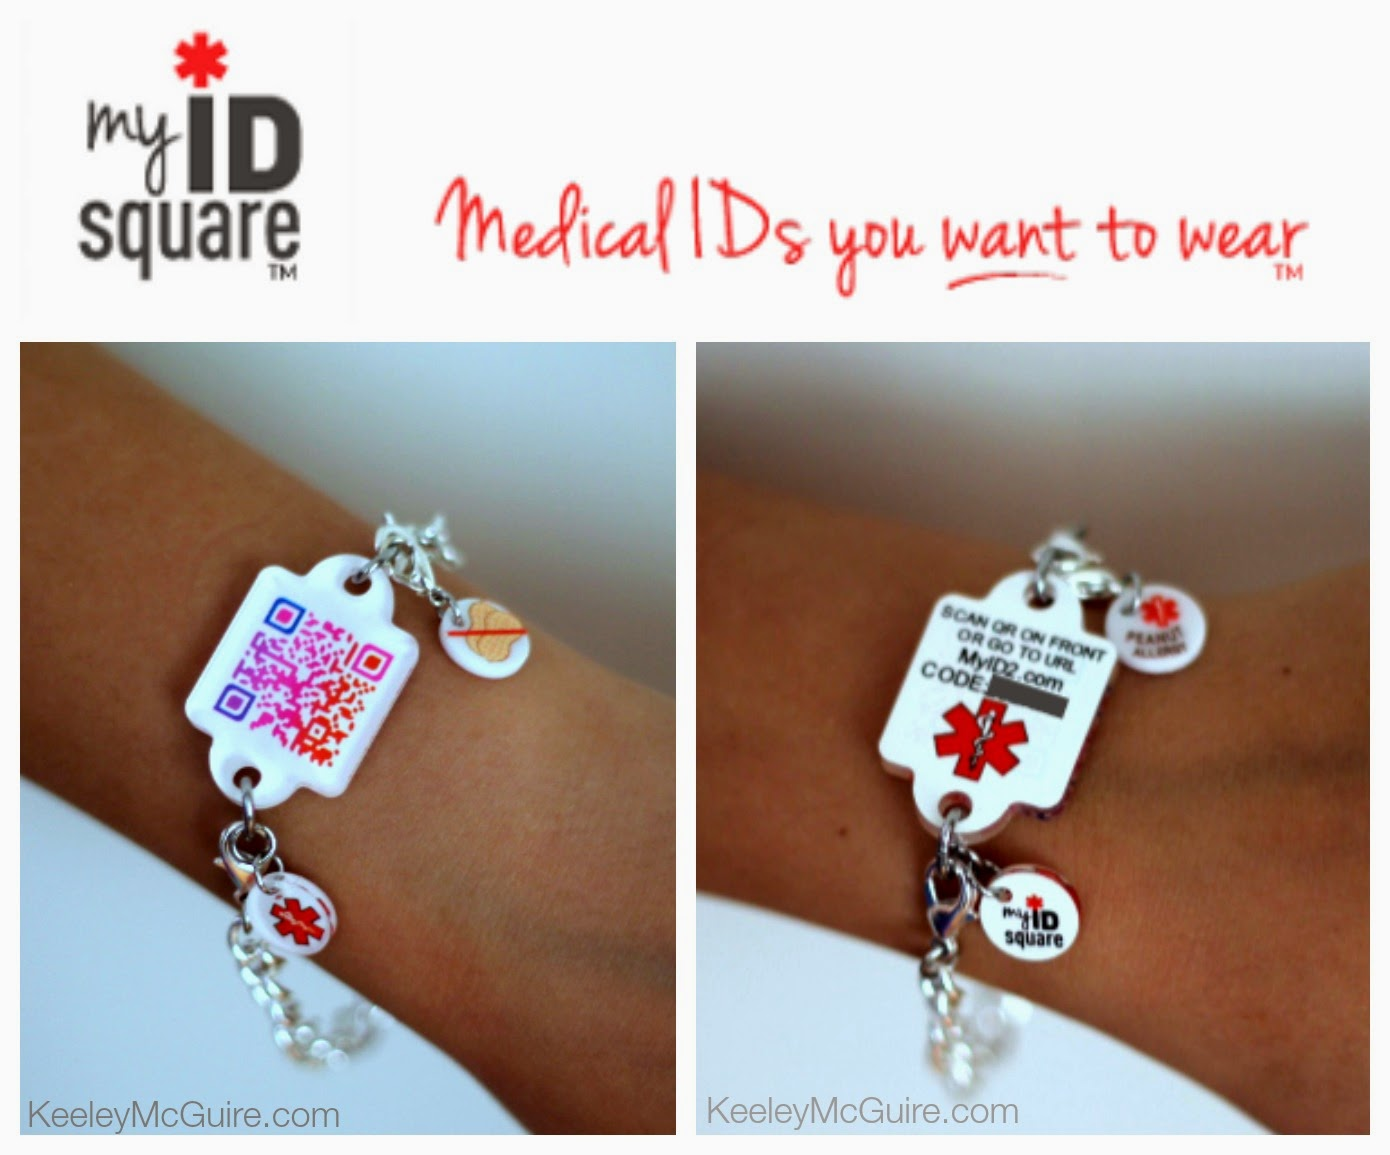 Gluten Free & Allergy Friendly: My ID Square: Medical IDs